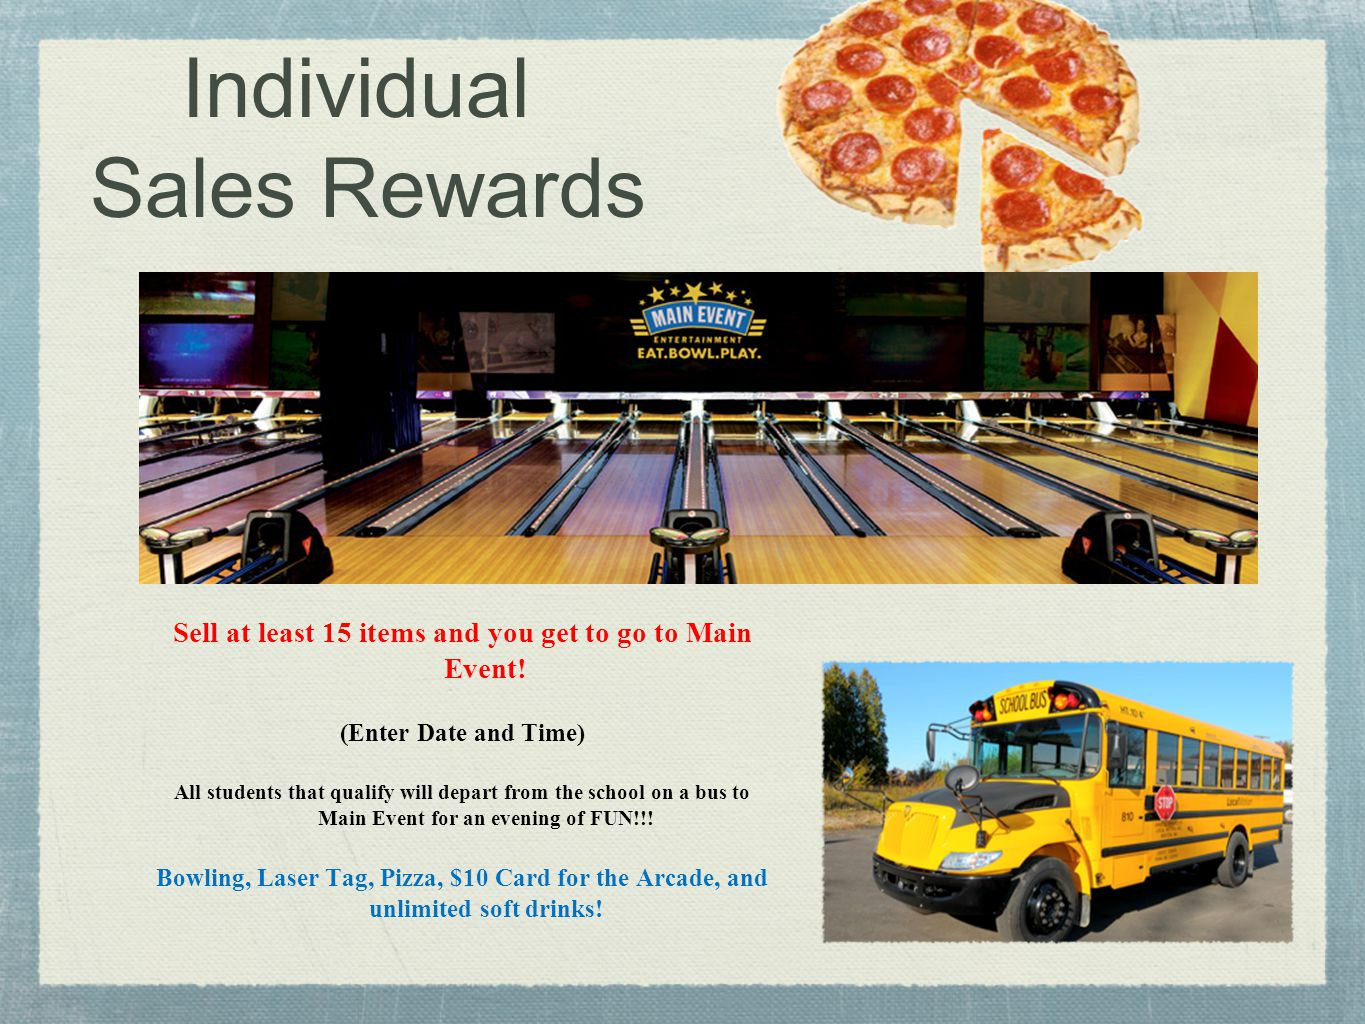 Individual Sales Rewards Sell at least 15 items and you get to go to Main Event.